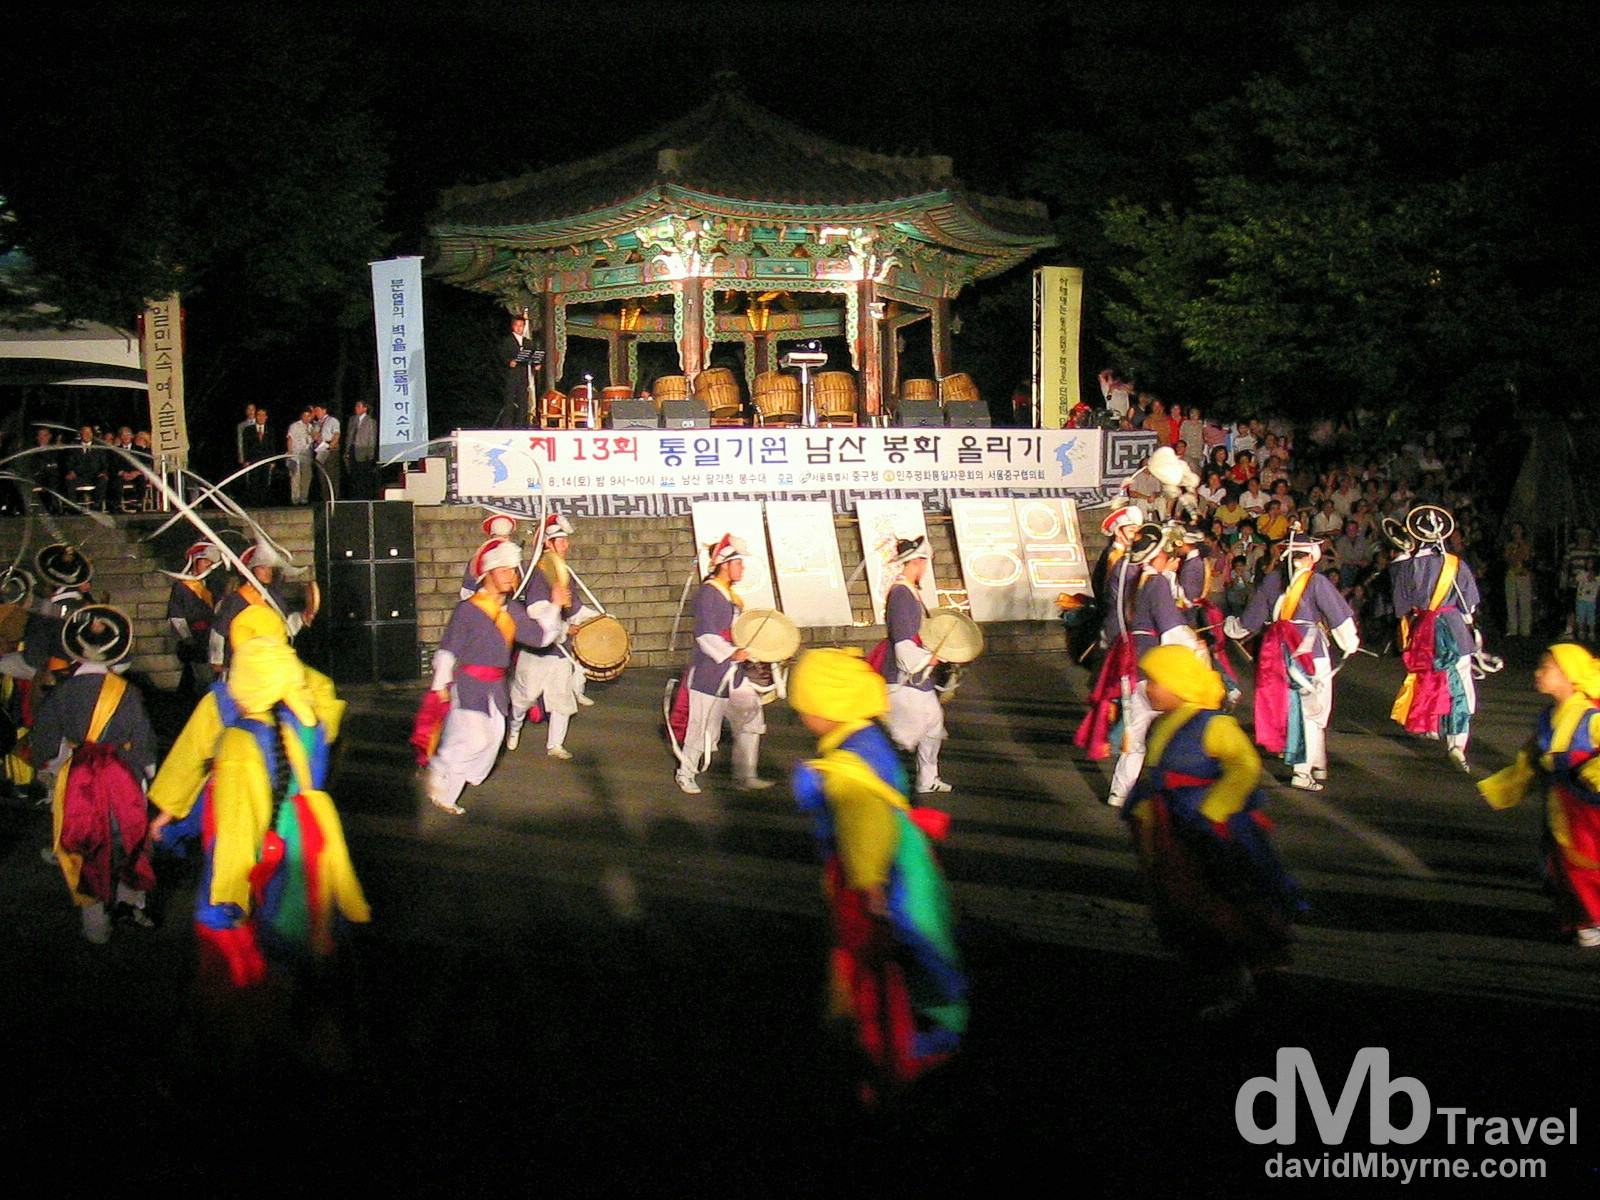 A traditional Farmers Dance in the grounds of Namsan Park in Seoul, South Korea. August 14th 2004